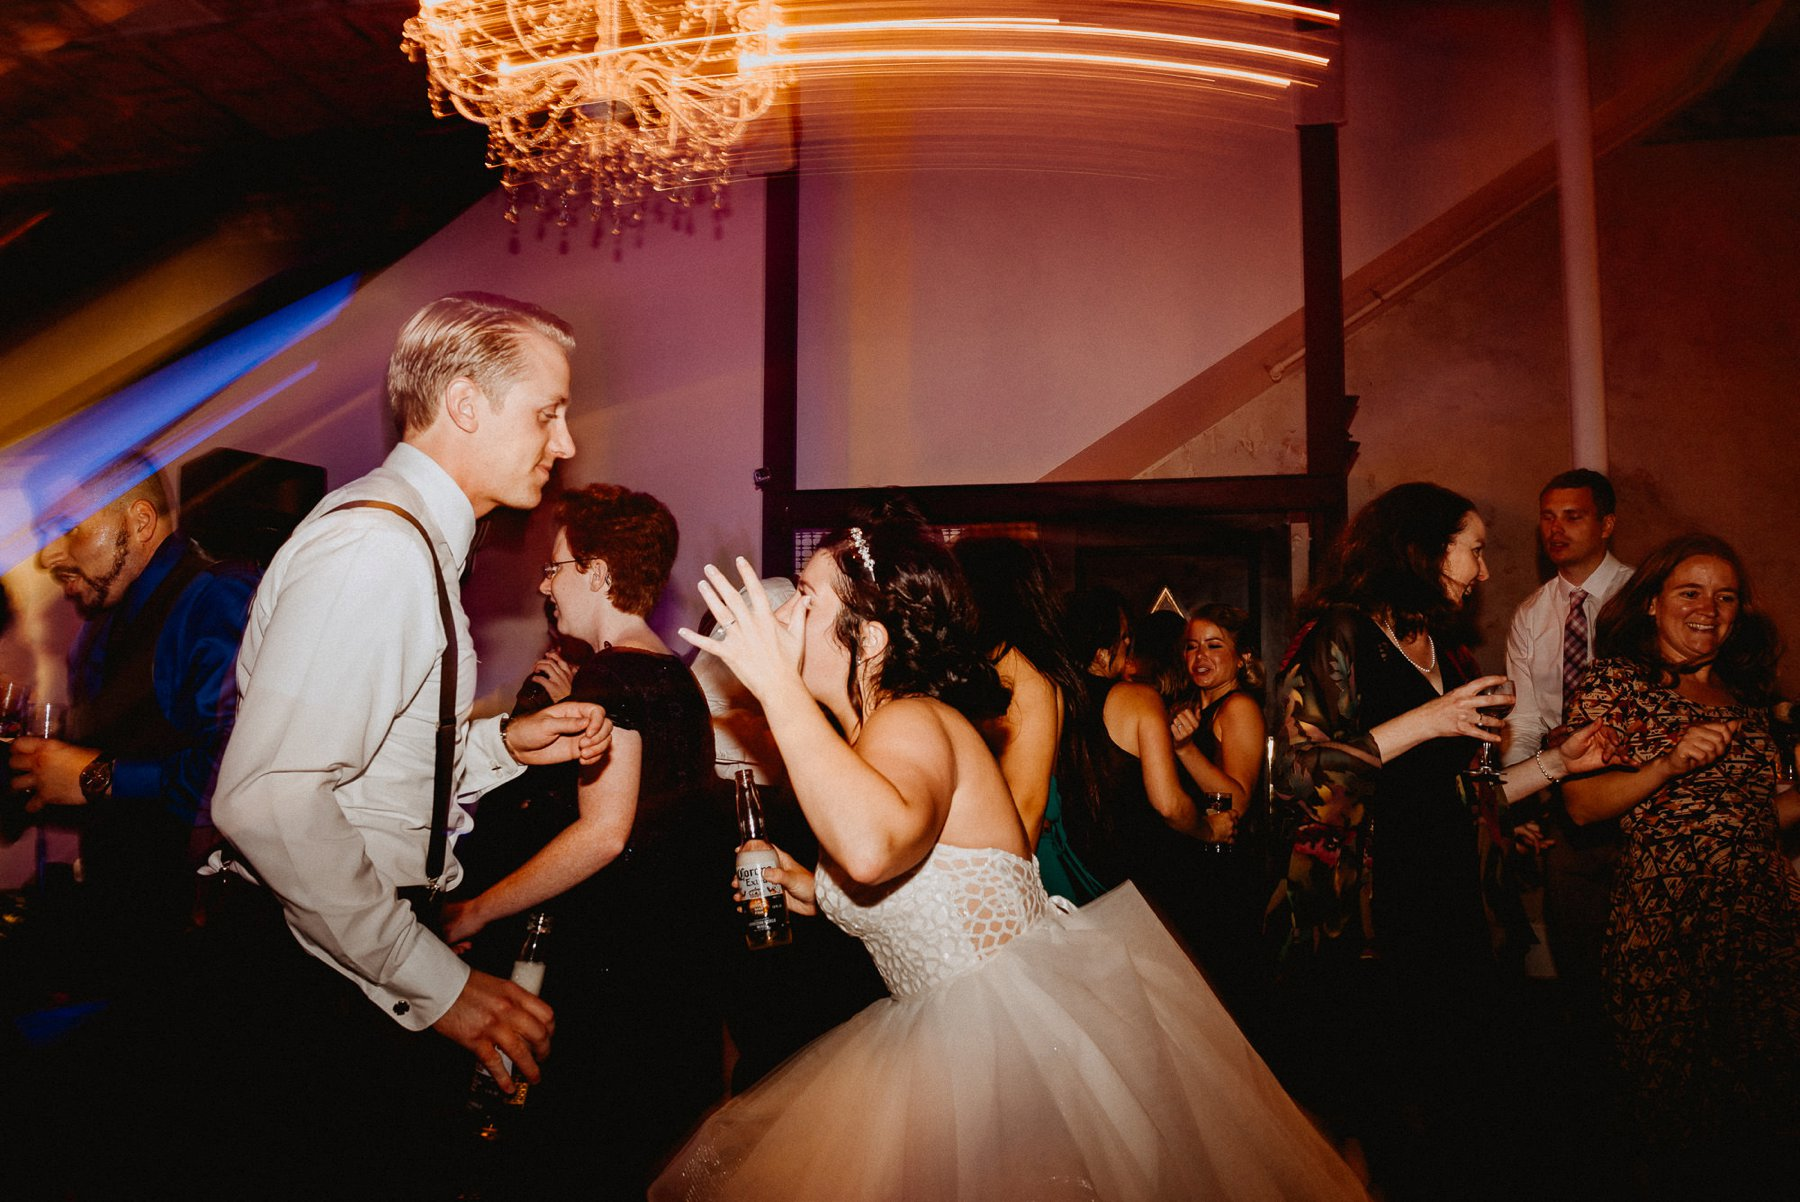 excelsior_lancaster_wedding_photographeer-074.jpg